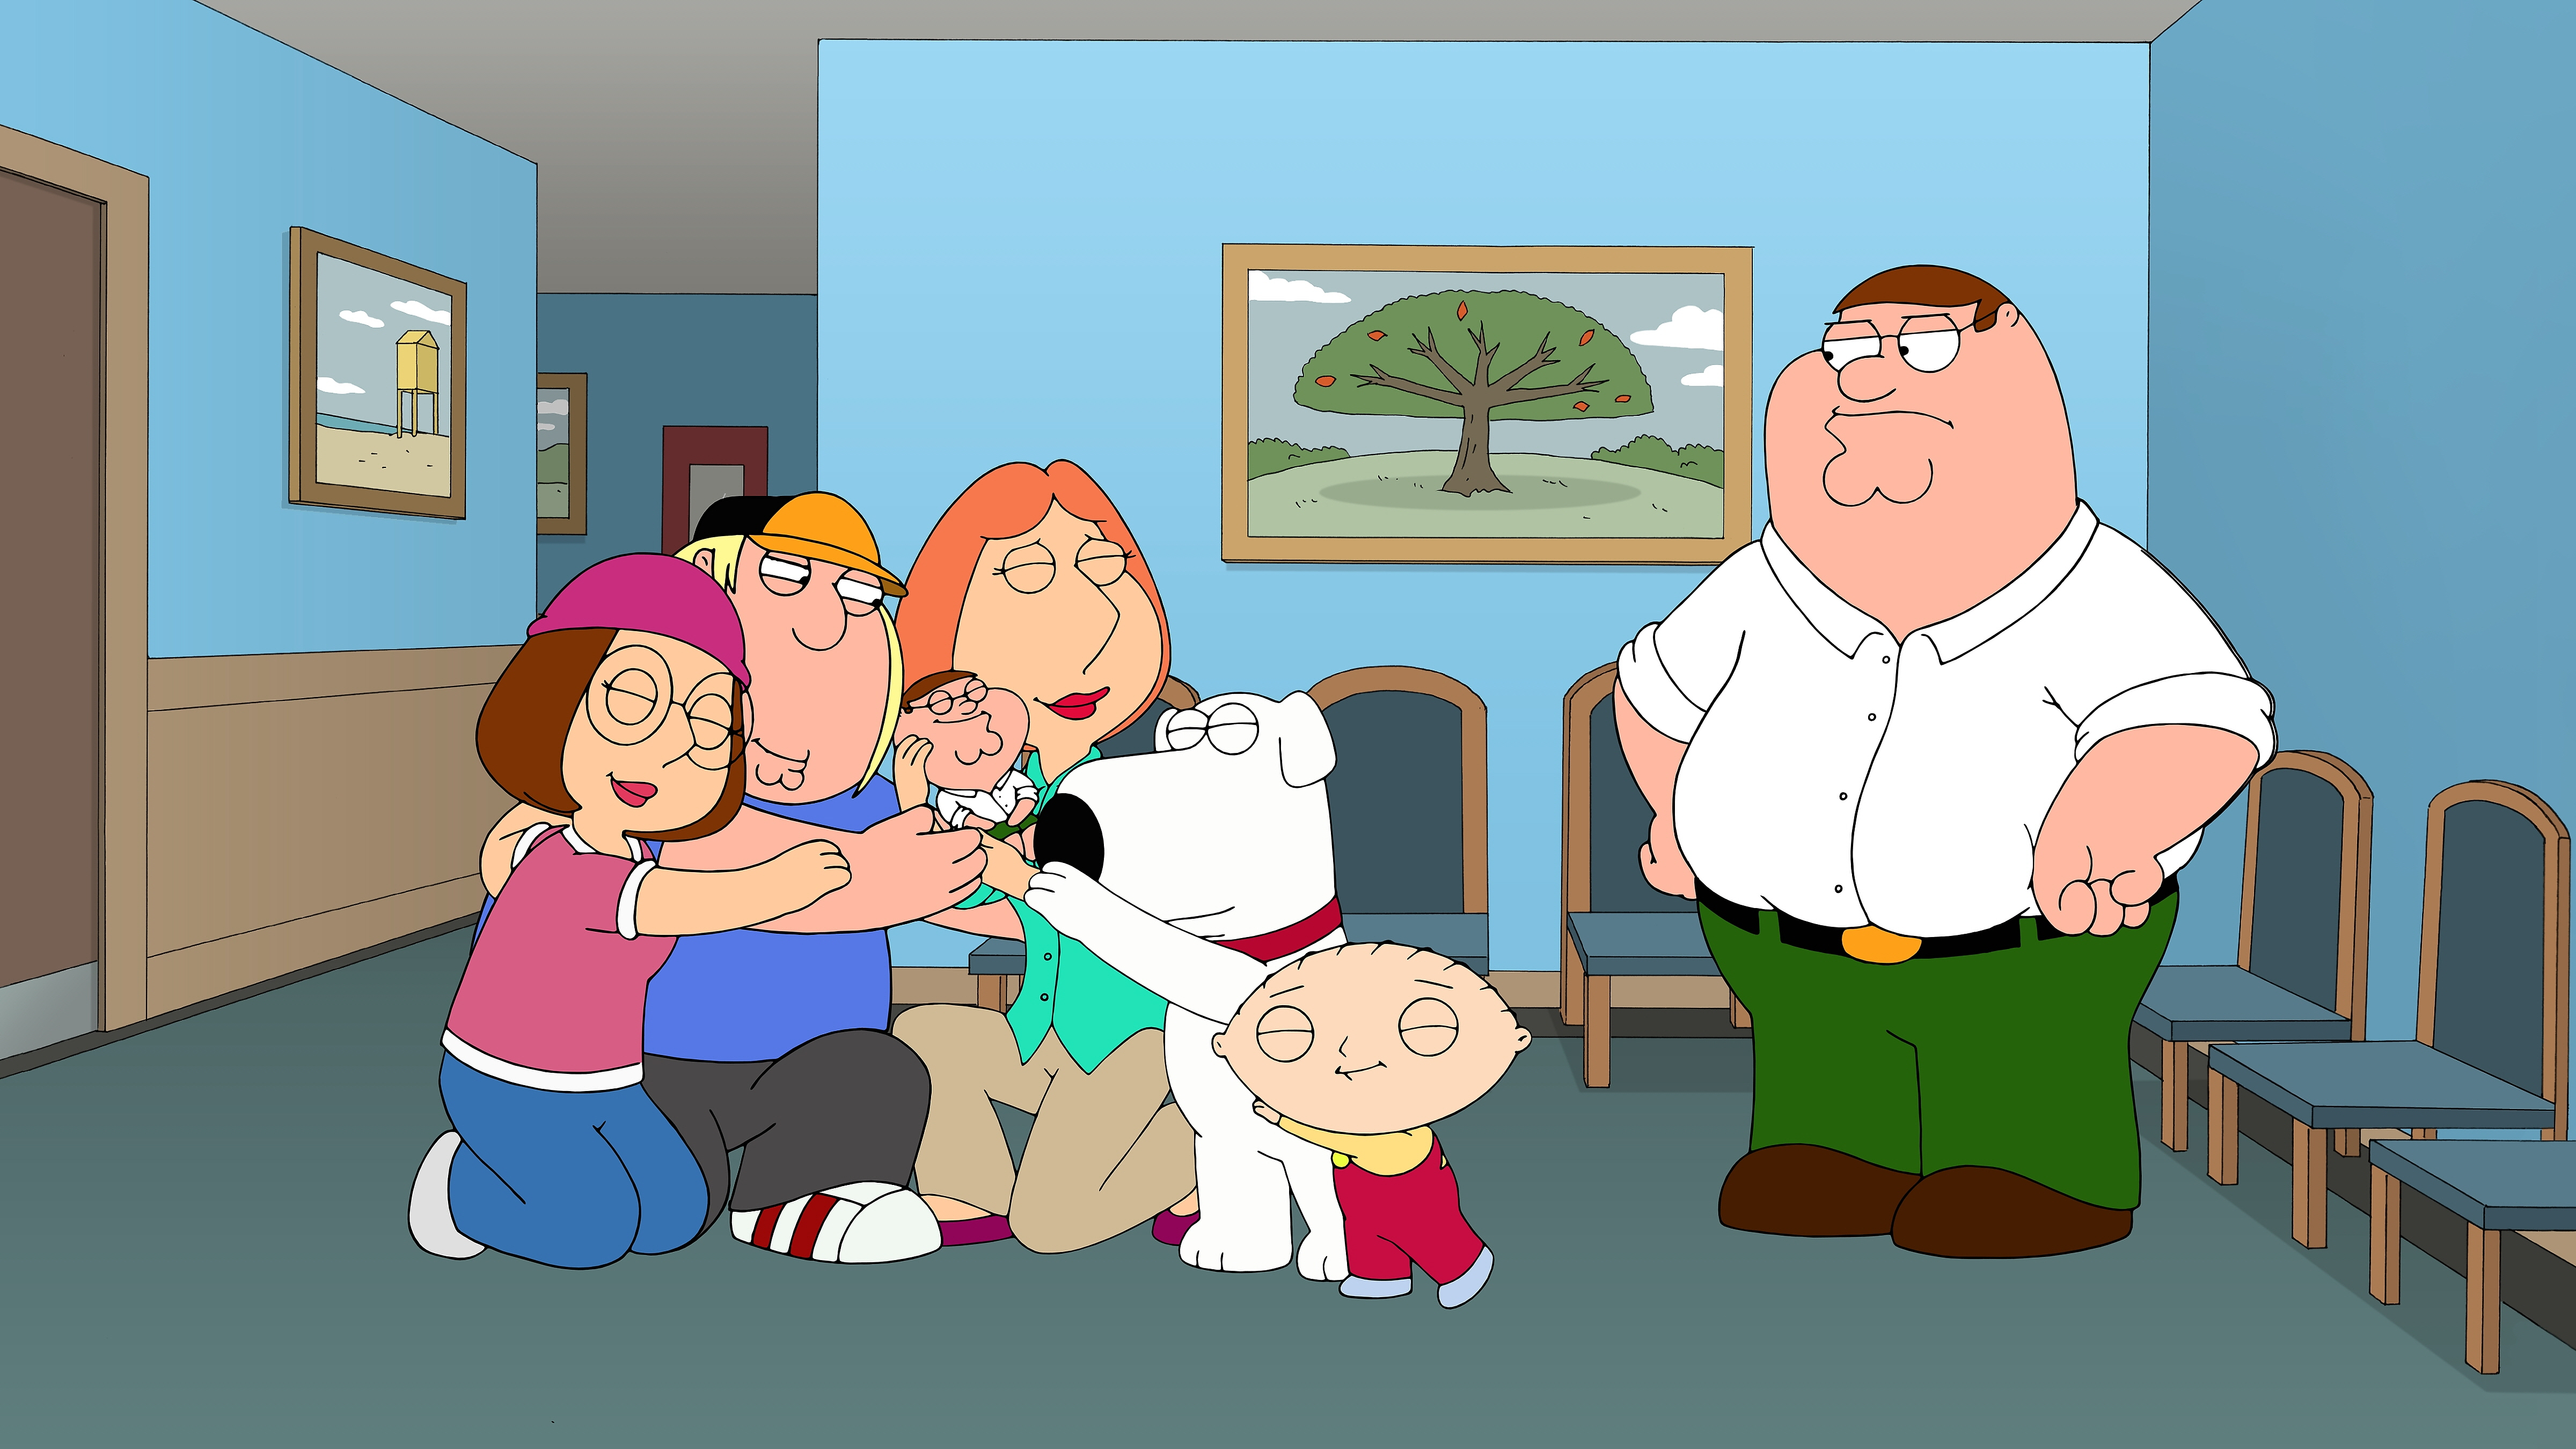 1000+ images about Family Guy on Pinterest | Family guy